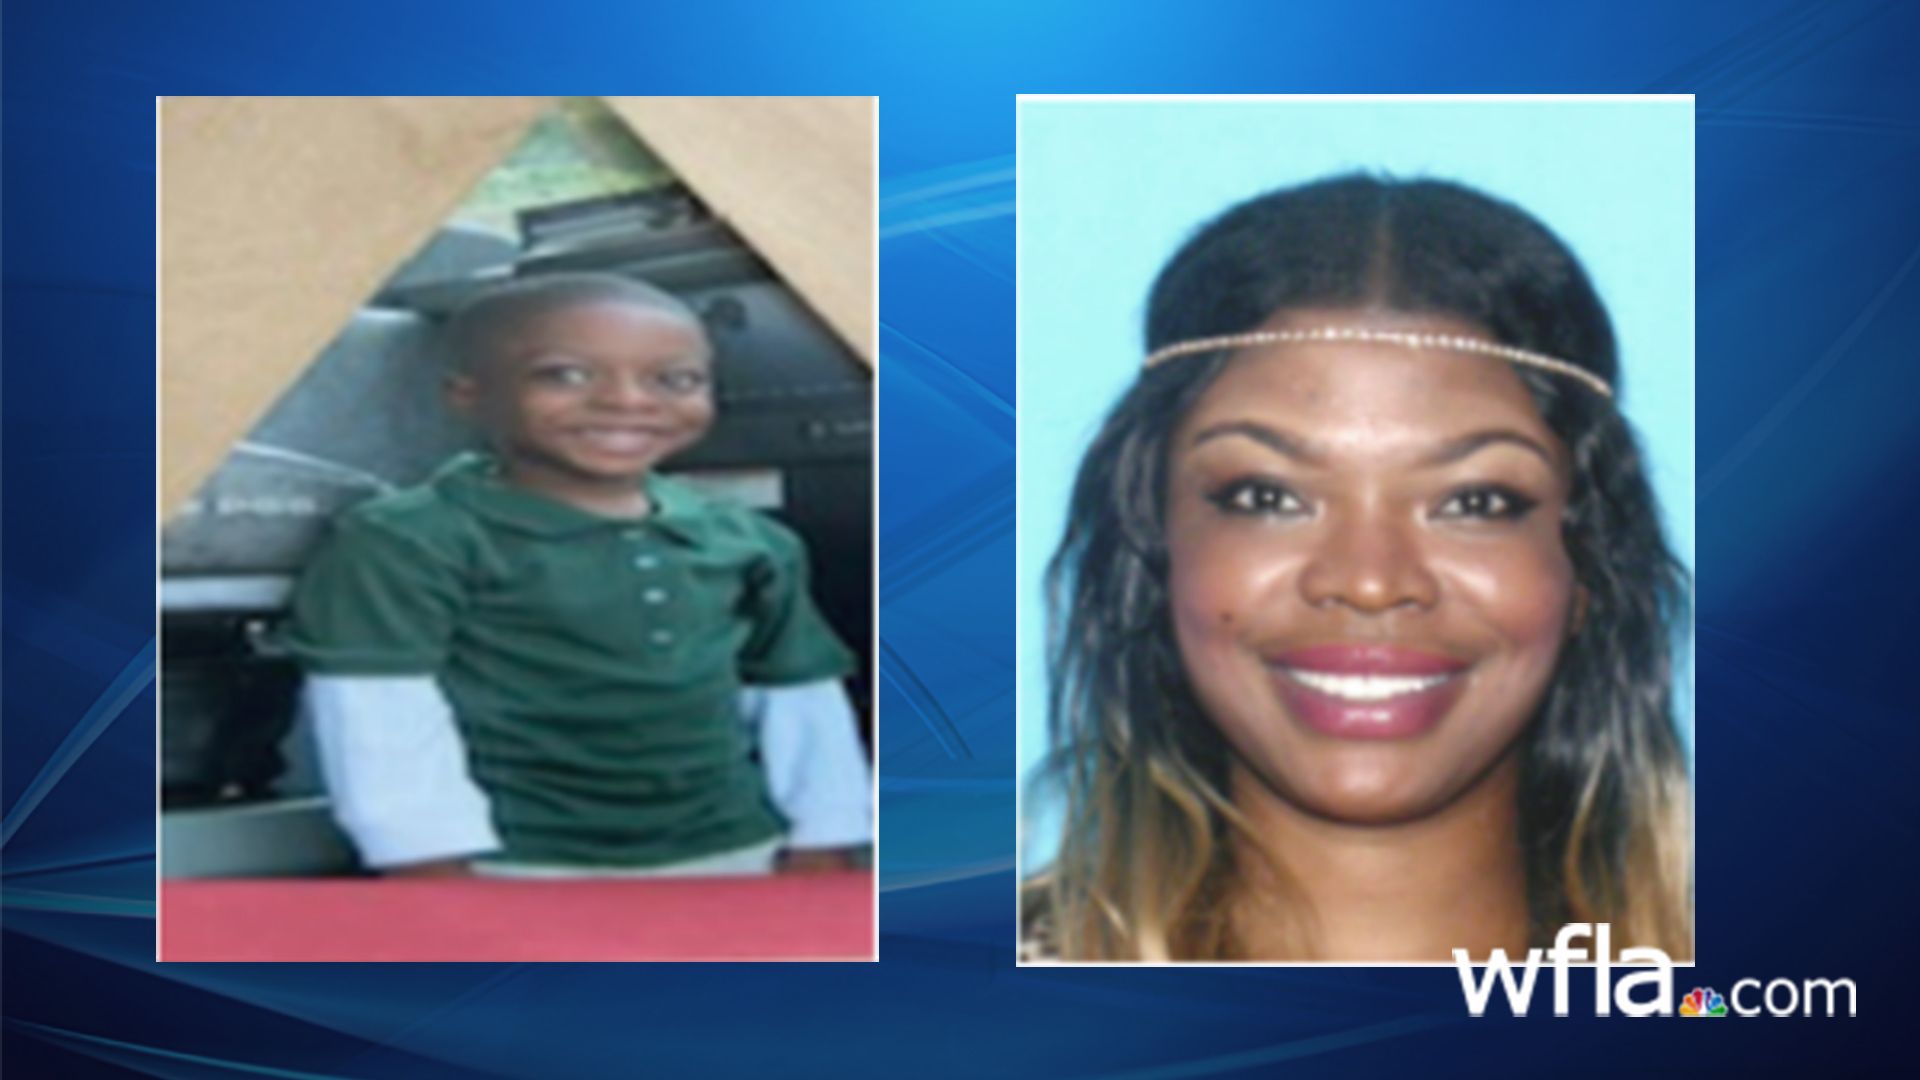 Missing child alert for 5-year-old boy in Delray Beach